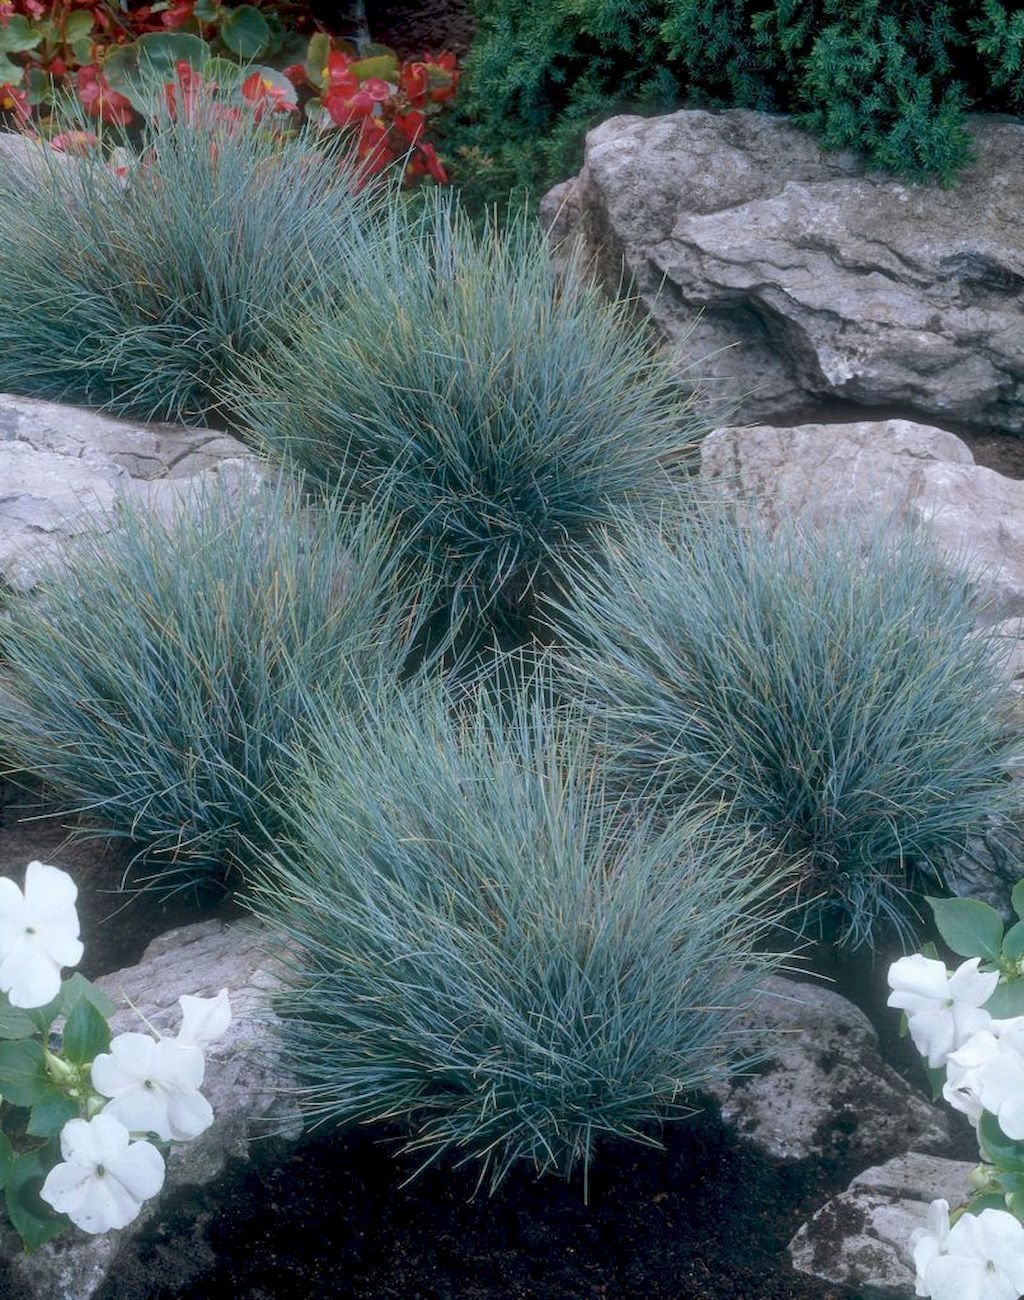 Pin by Becky Washnock Campbell on Front yard | Small front ... on Non Grass Backyard Ideas id=28247